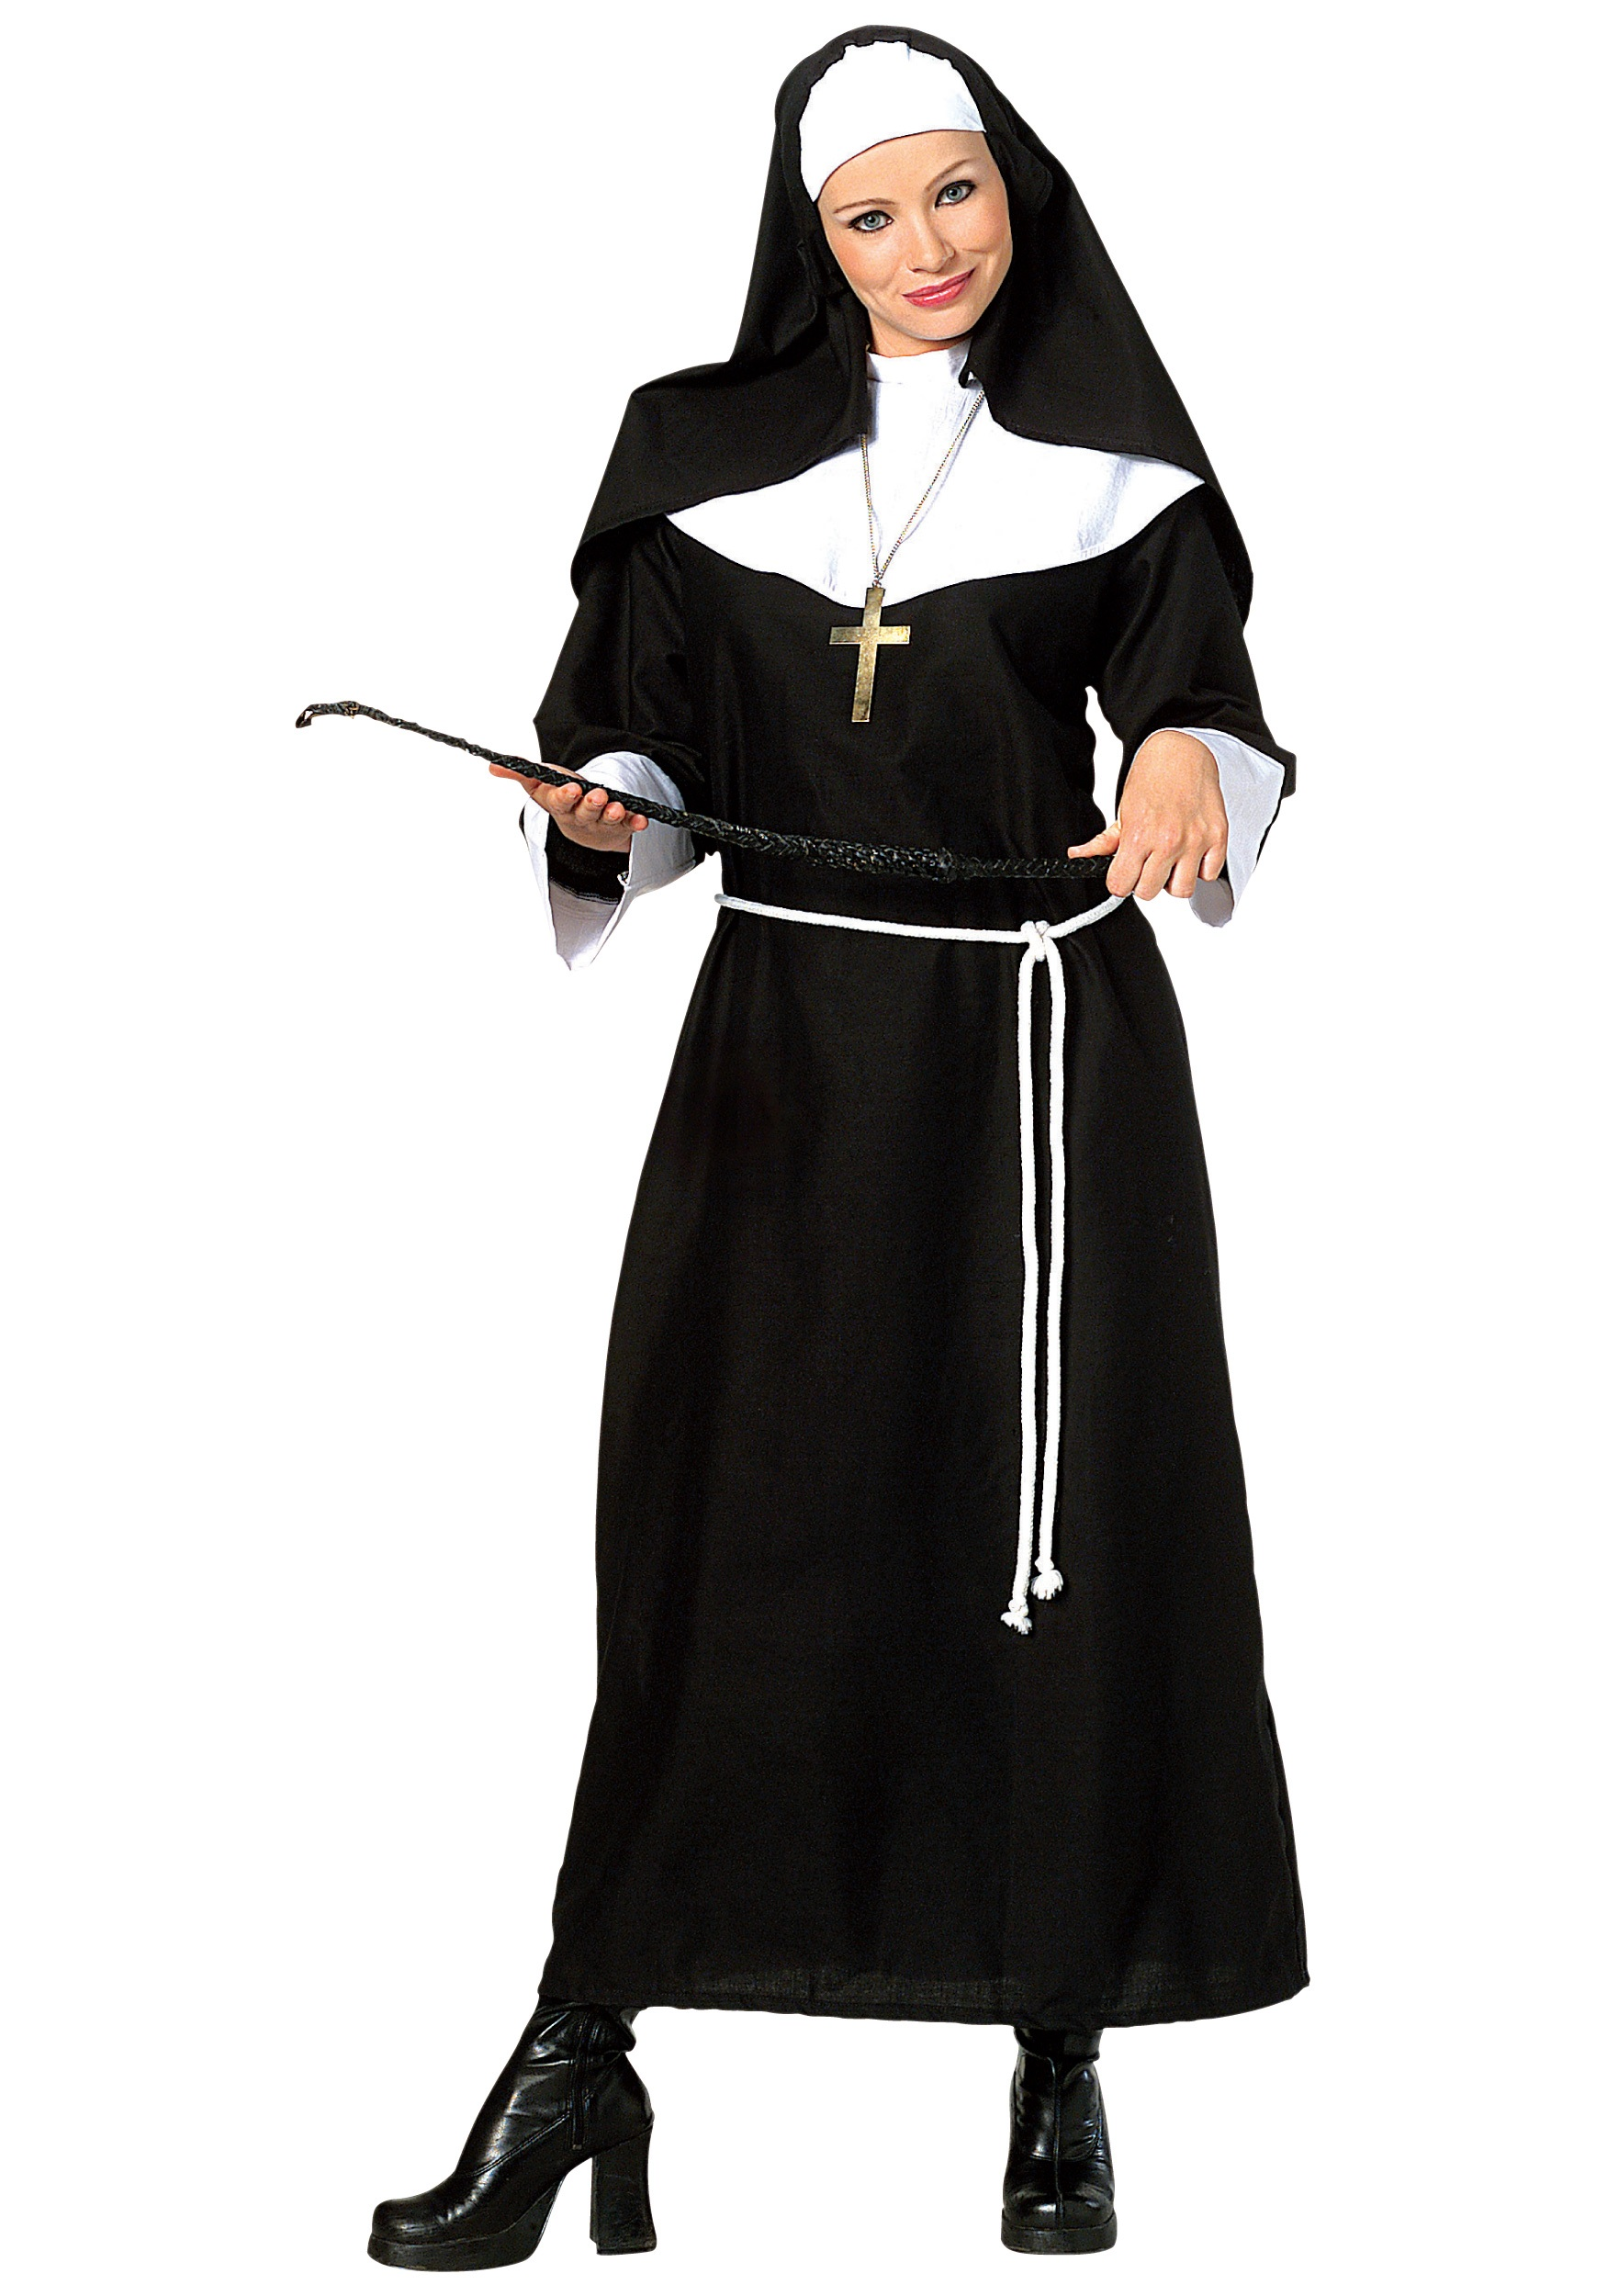 sc 1 st  Halloween Costumes & Adult Classic Nun Costume